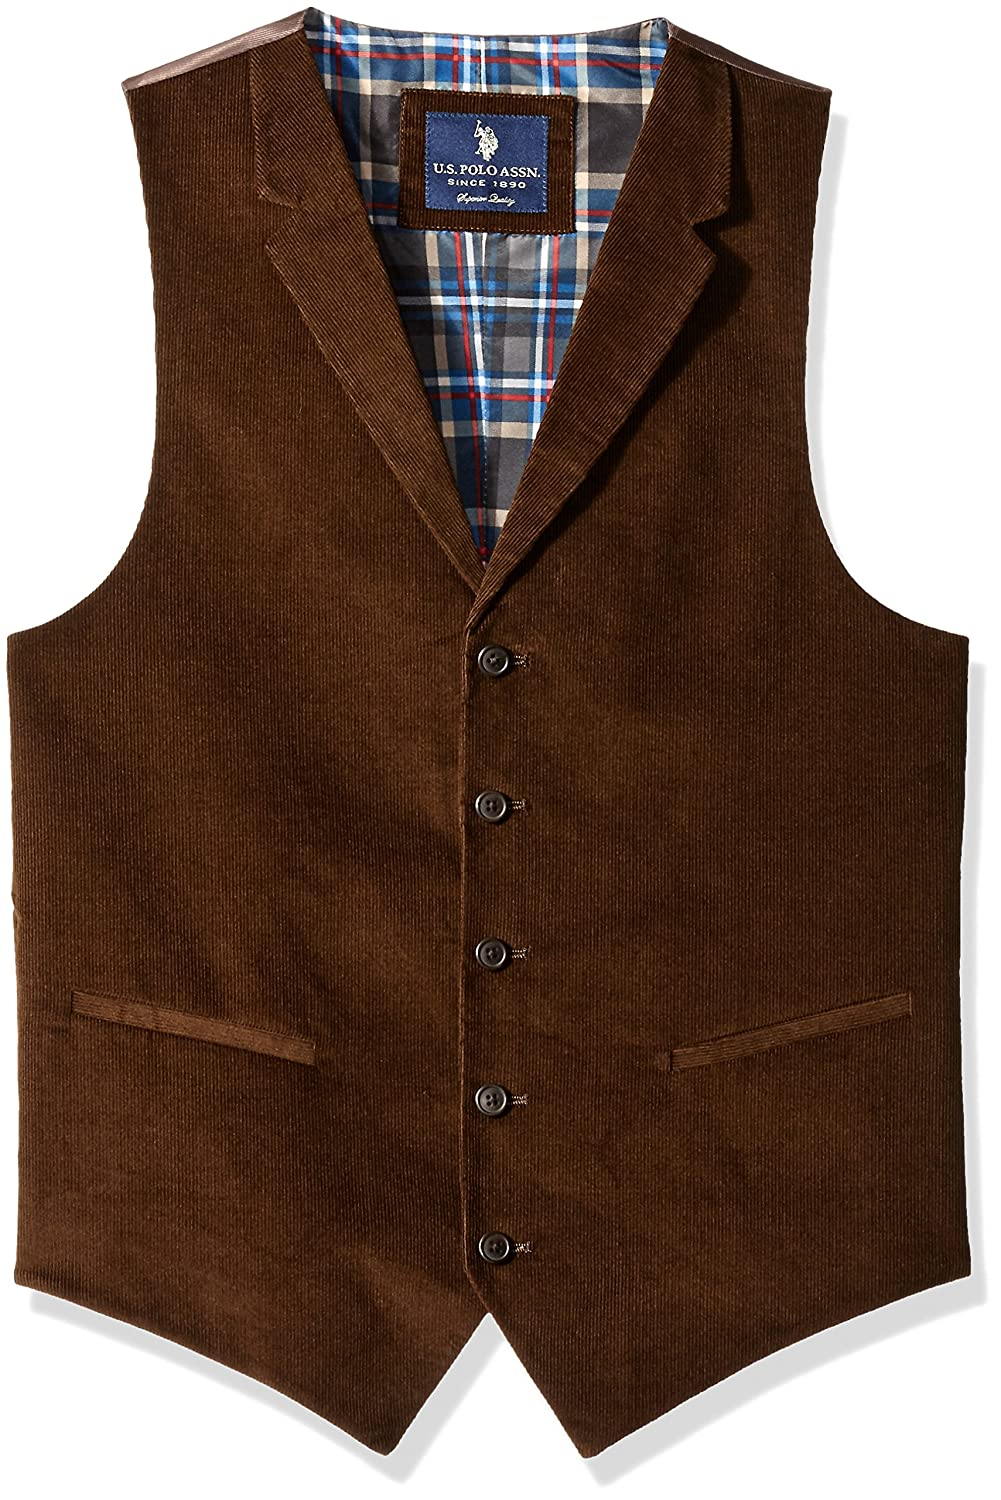 Men's Vintage Vests, Sweater Vests U.S. Polo Assn. Mens Corduroy Vest $29.99 AT vintagedancer.com